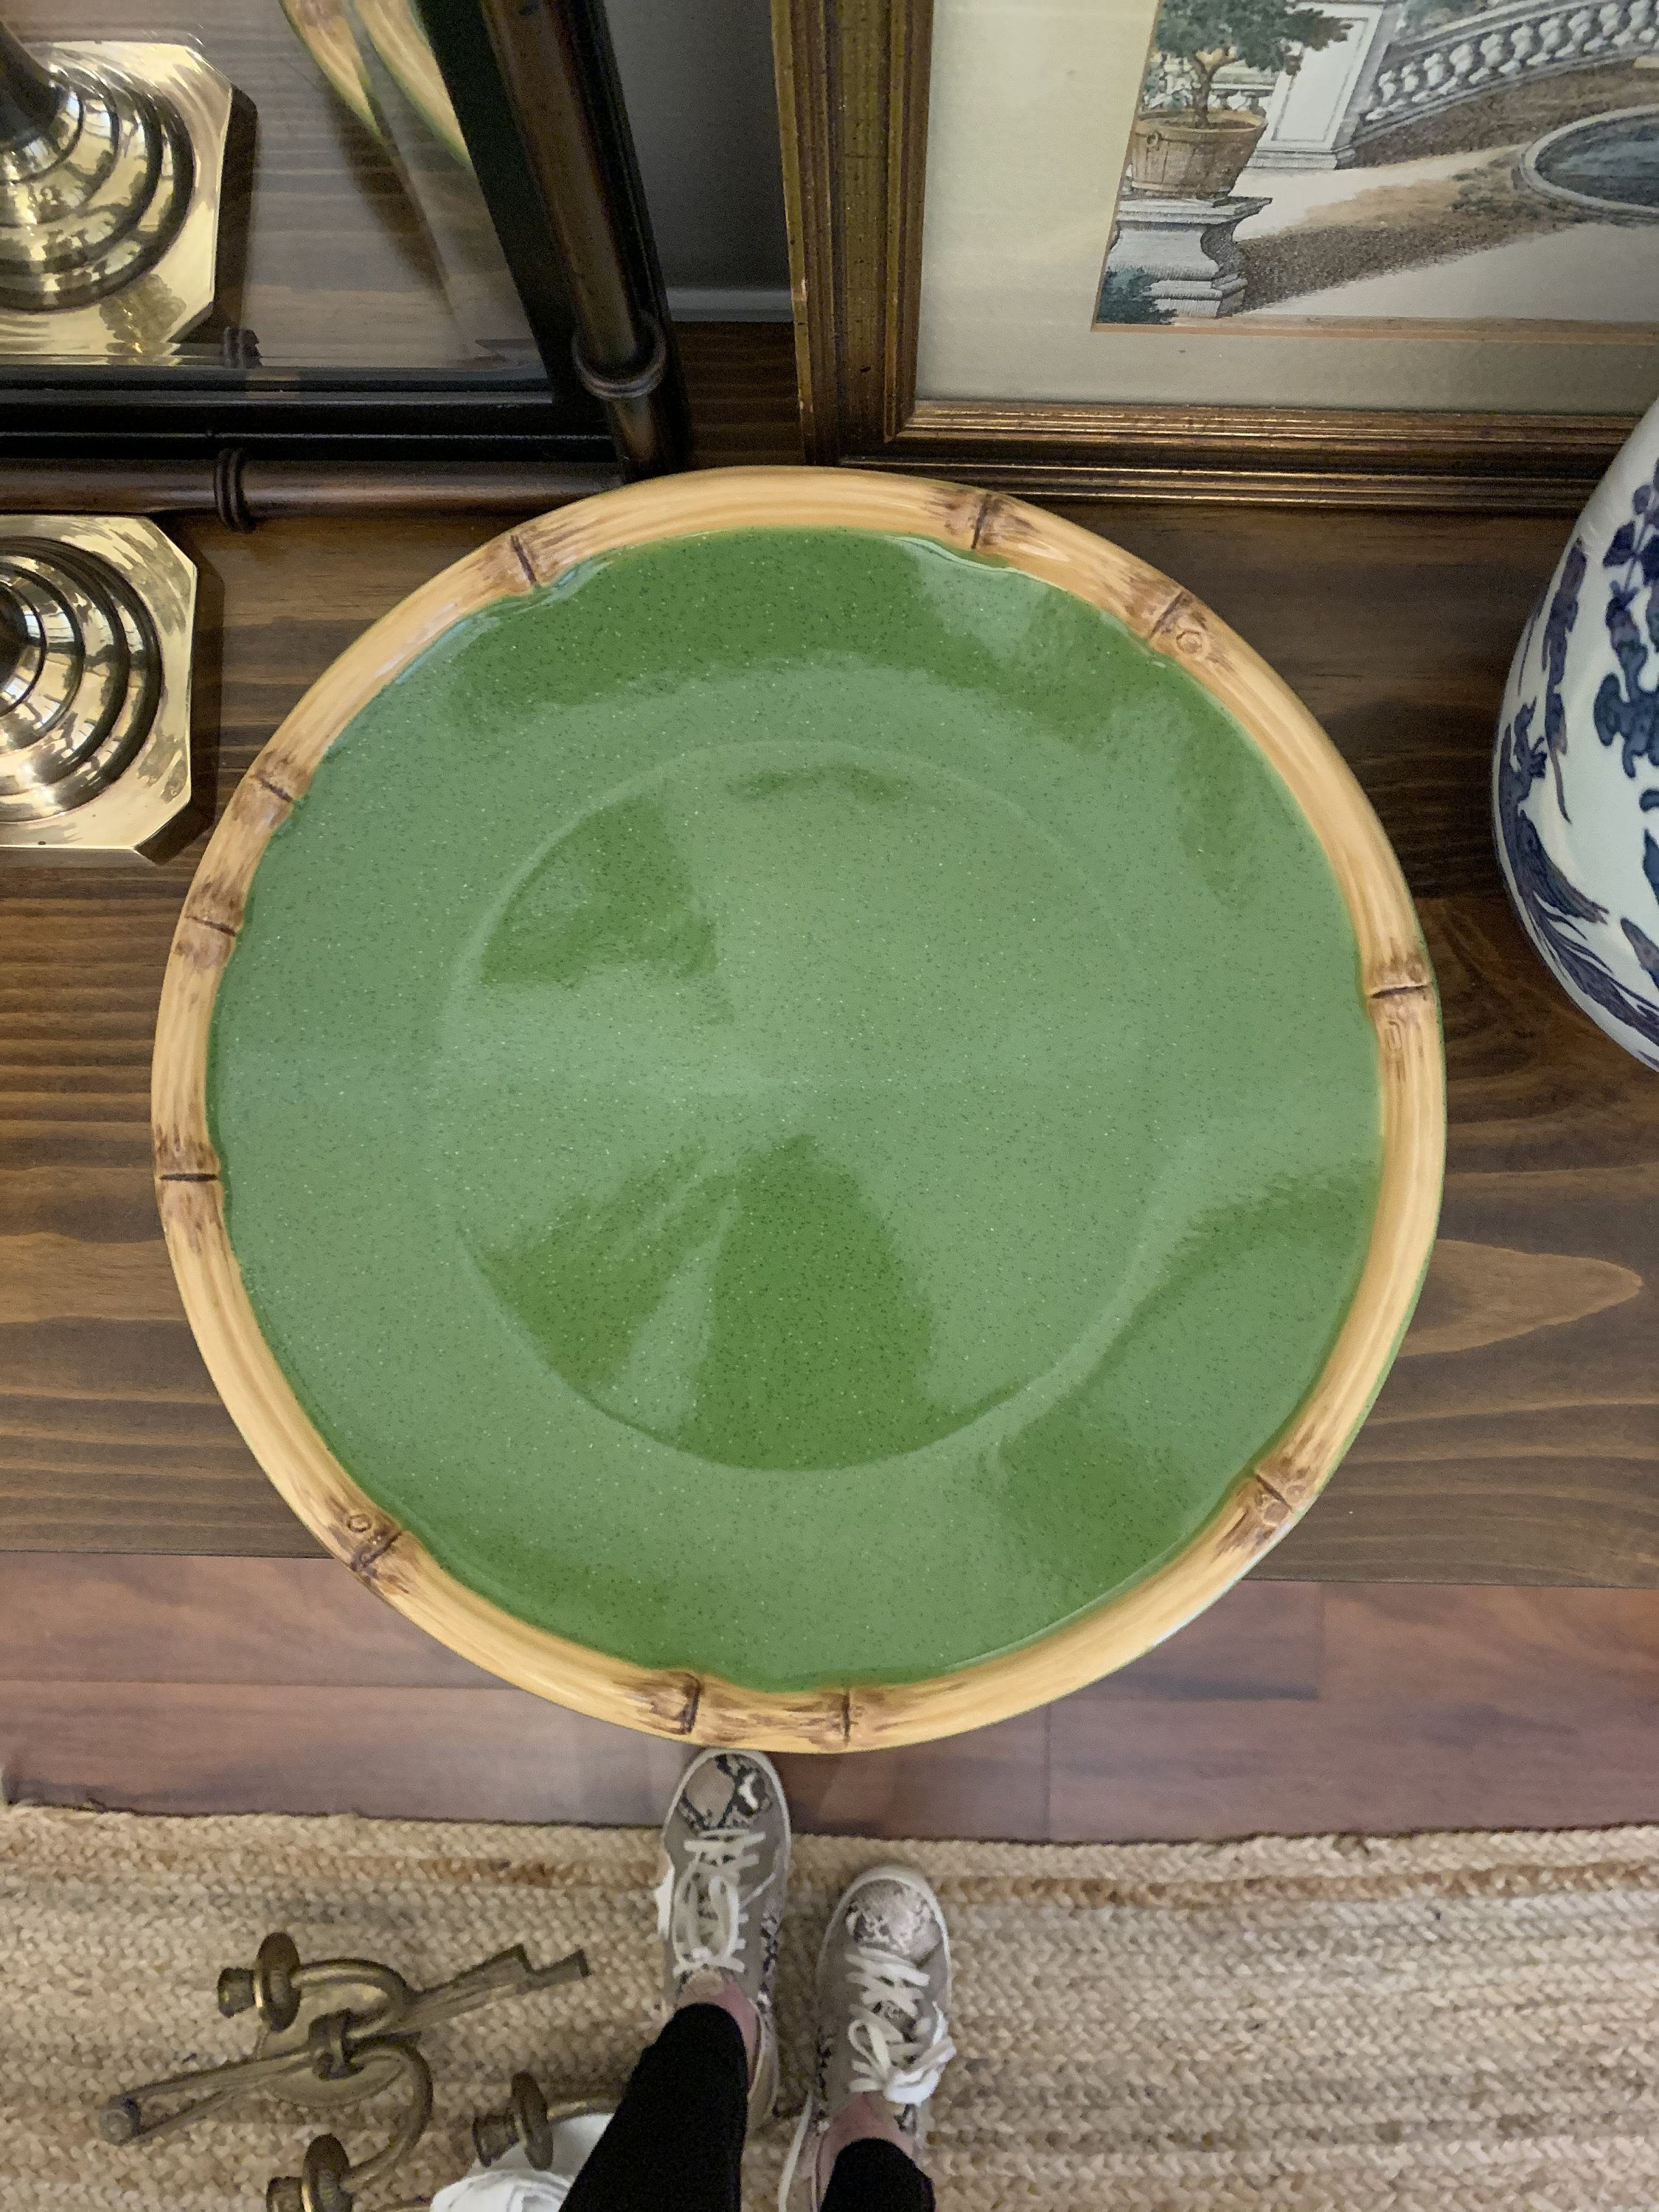 Green Stoneware Plate With Bamboo Rim Large Ceramic Bamboo Plate Display Plate Charger Plate By Mulherinlane On Et In 2020 Bamboo Plates Plates On Wall Plate Display